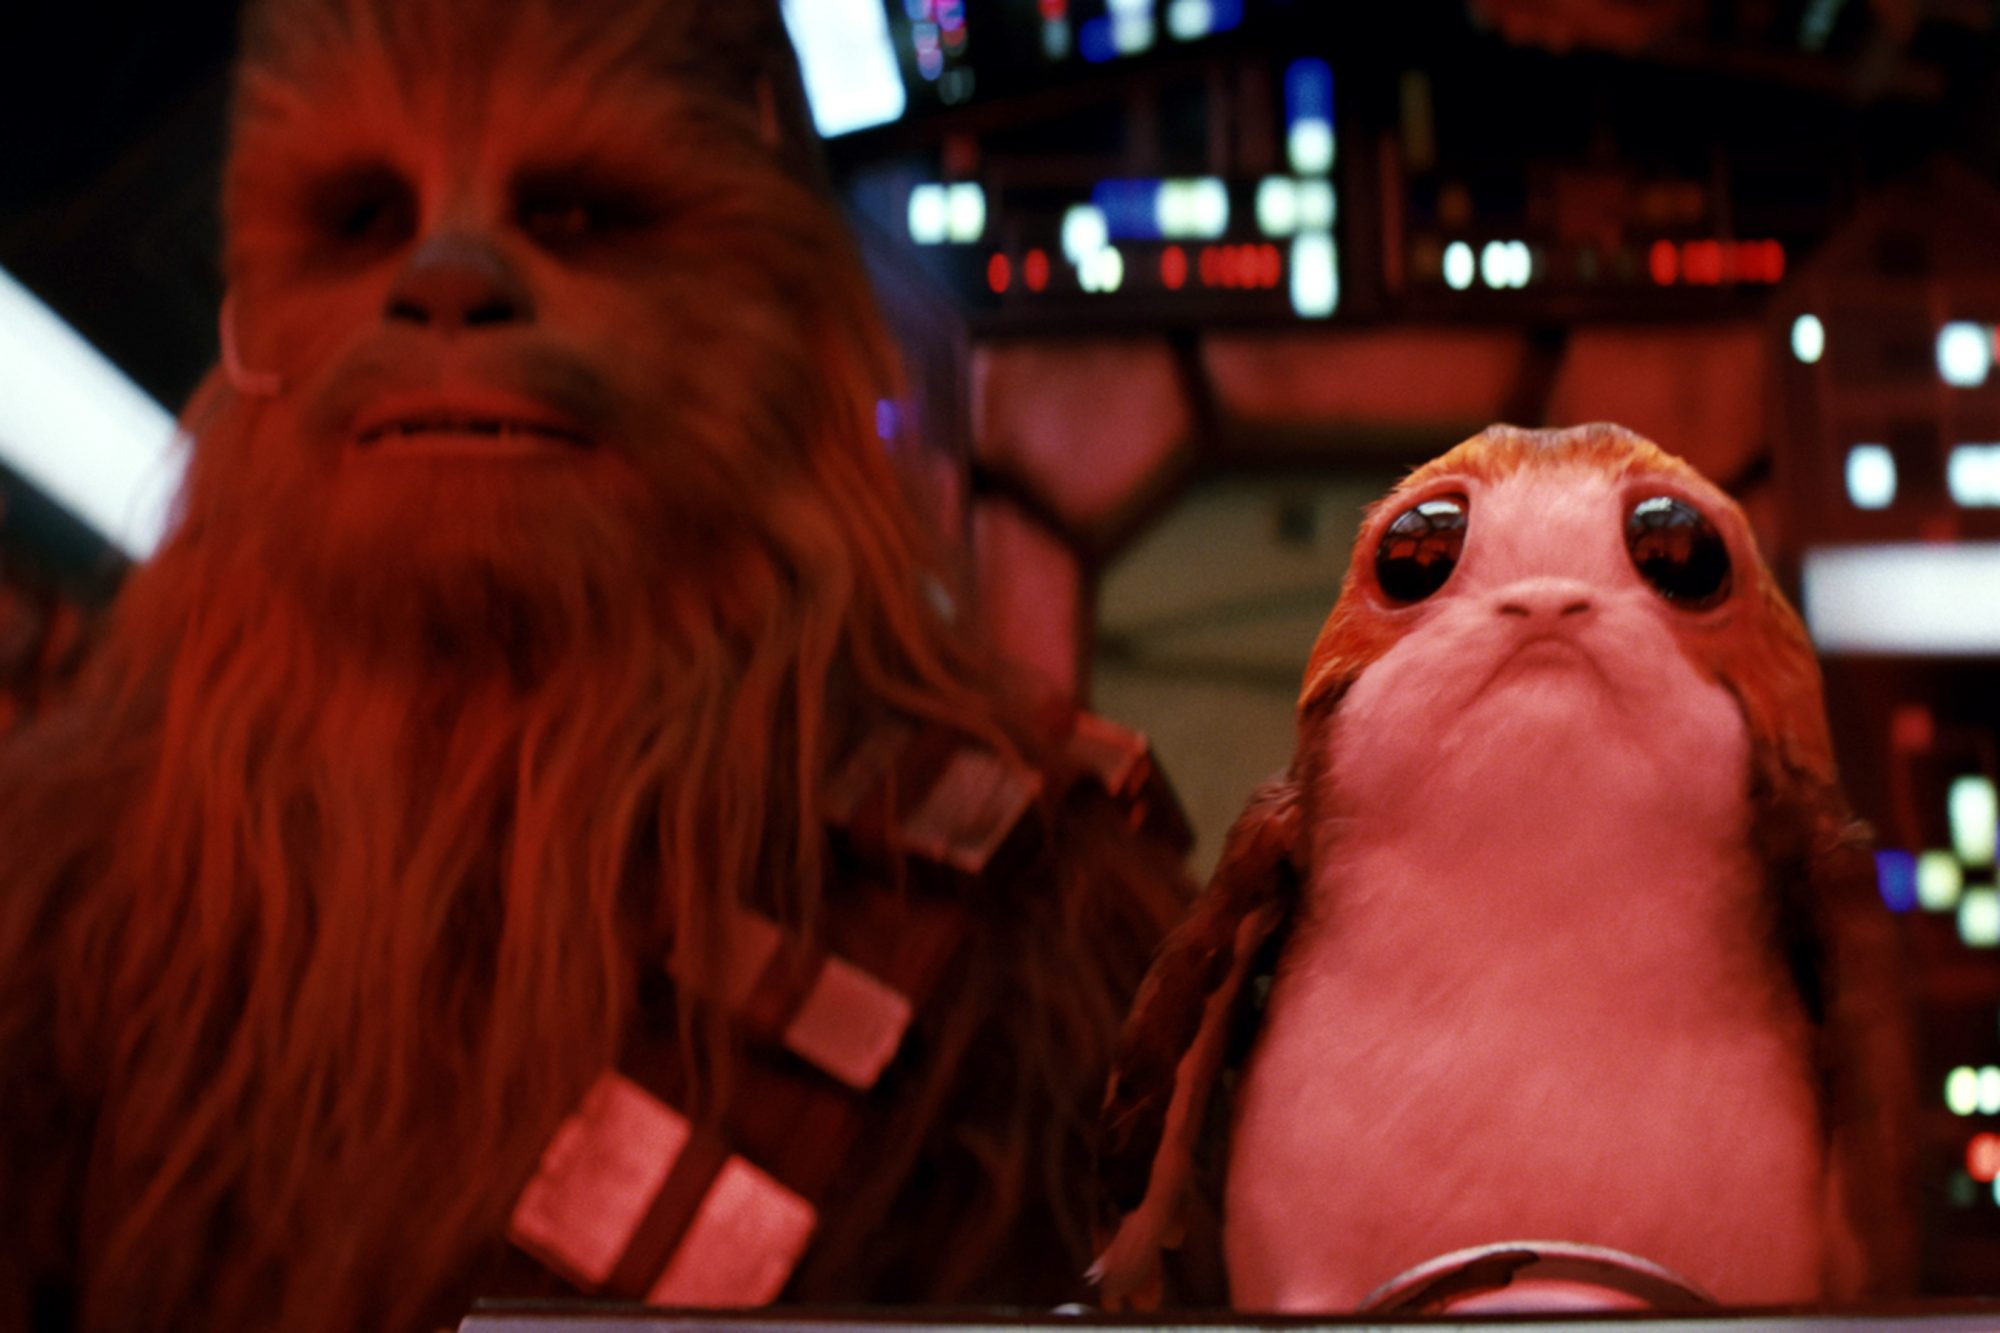 Watch 'Star Wars' director Rian Johnson slice open a 'terrifyingly realistic' porg cake